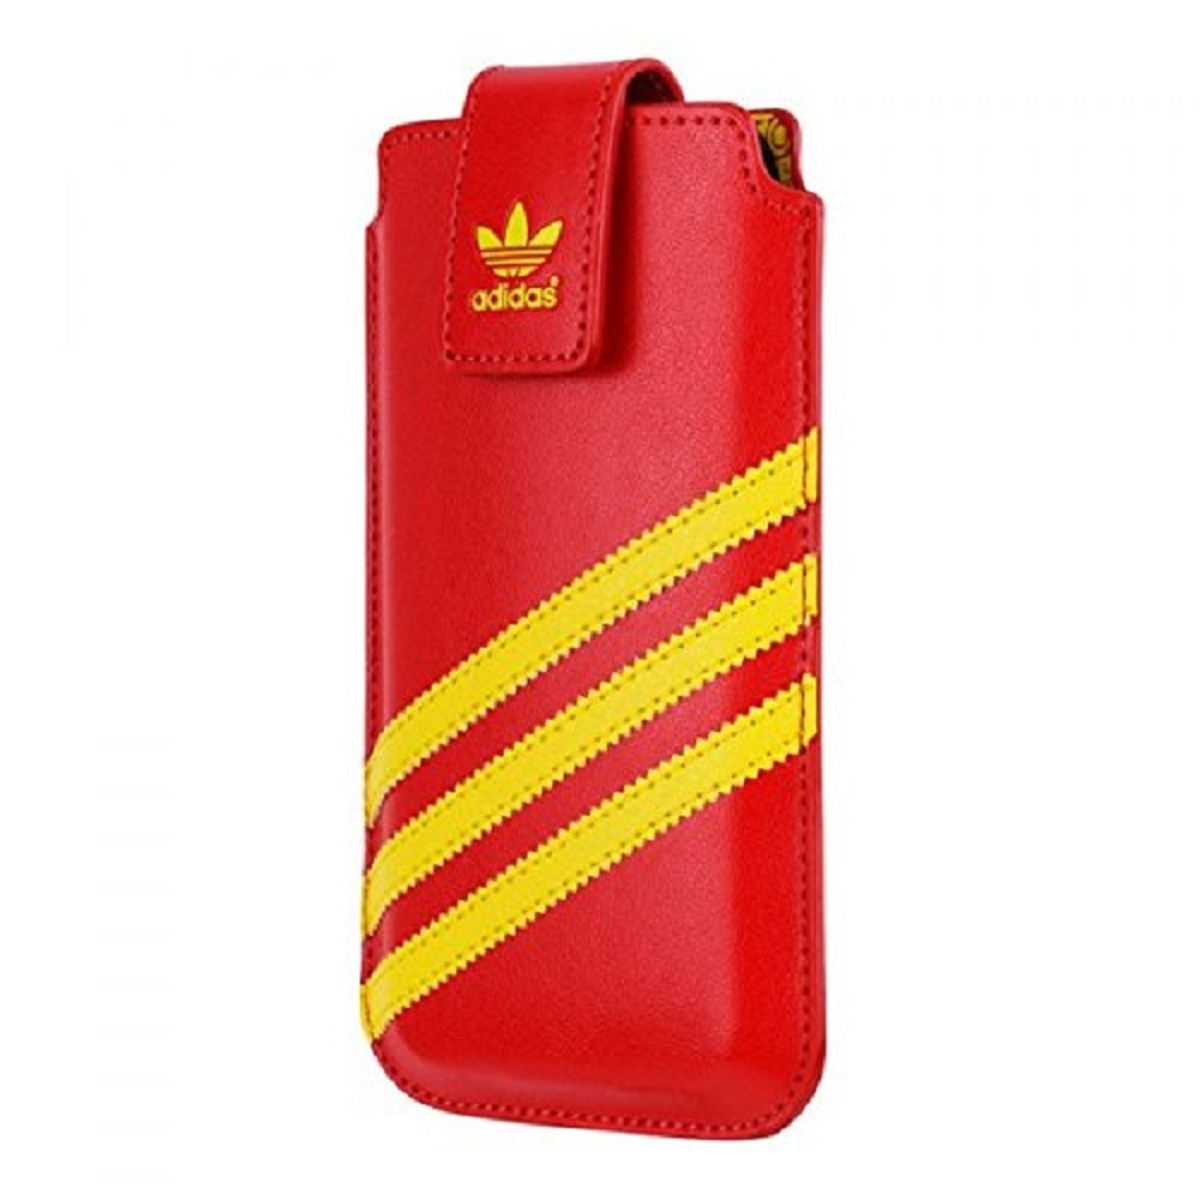 adidas Originals Tasche Sleeve M iPhone 4/4s/5/5c Galaxy...